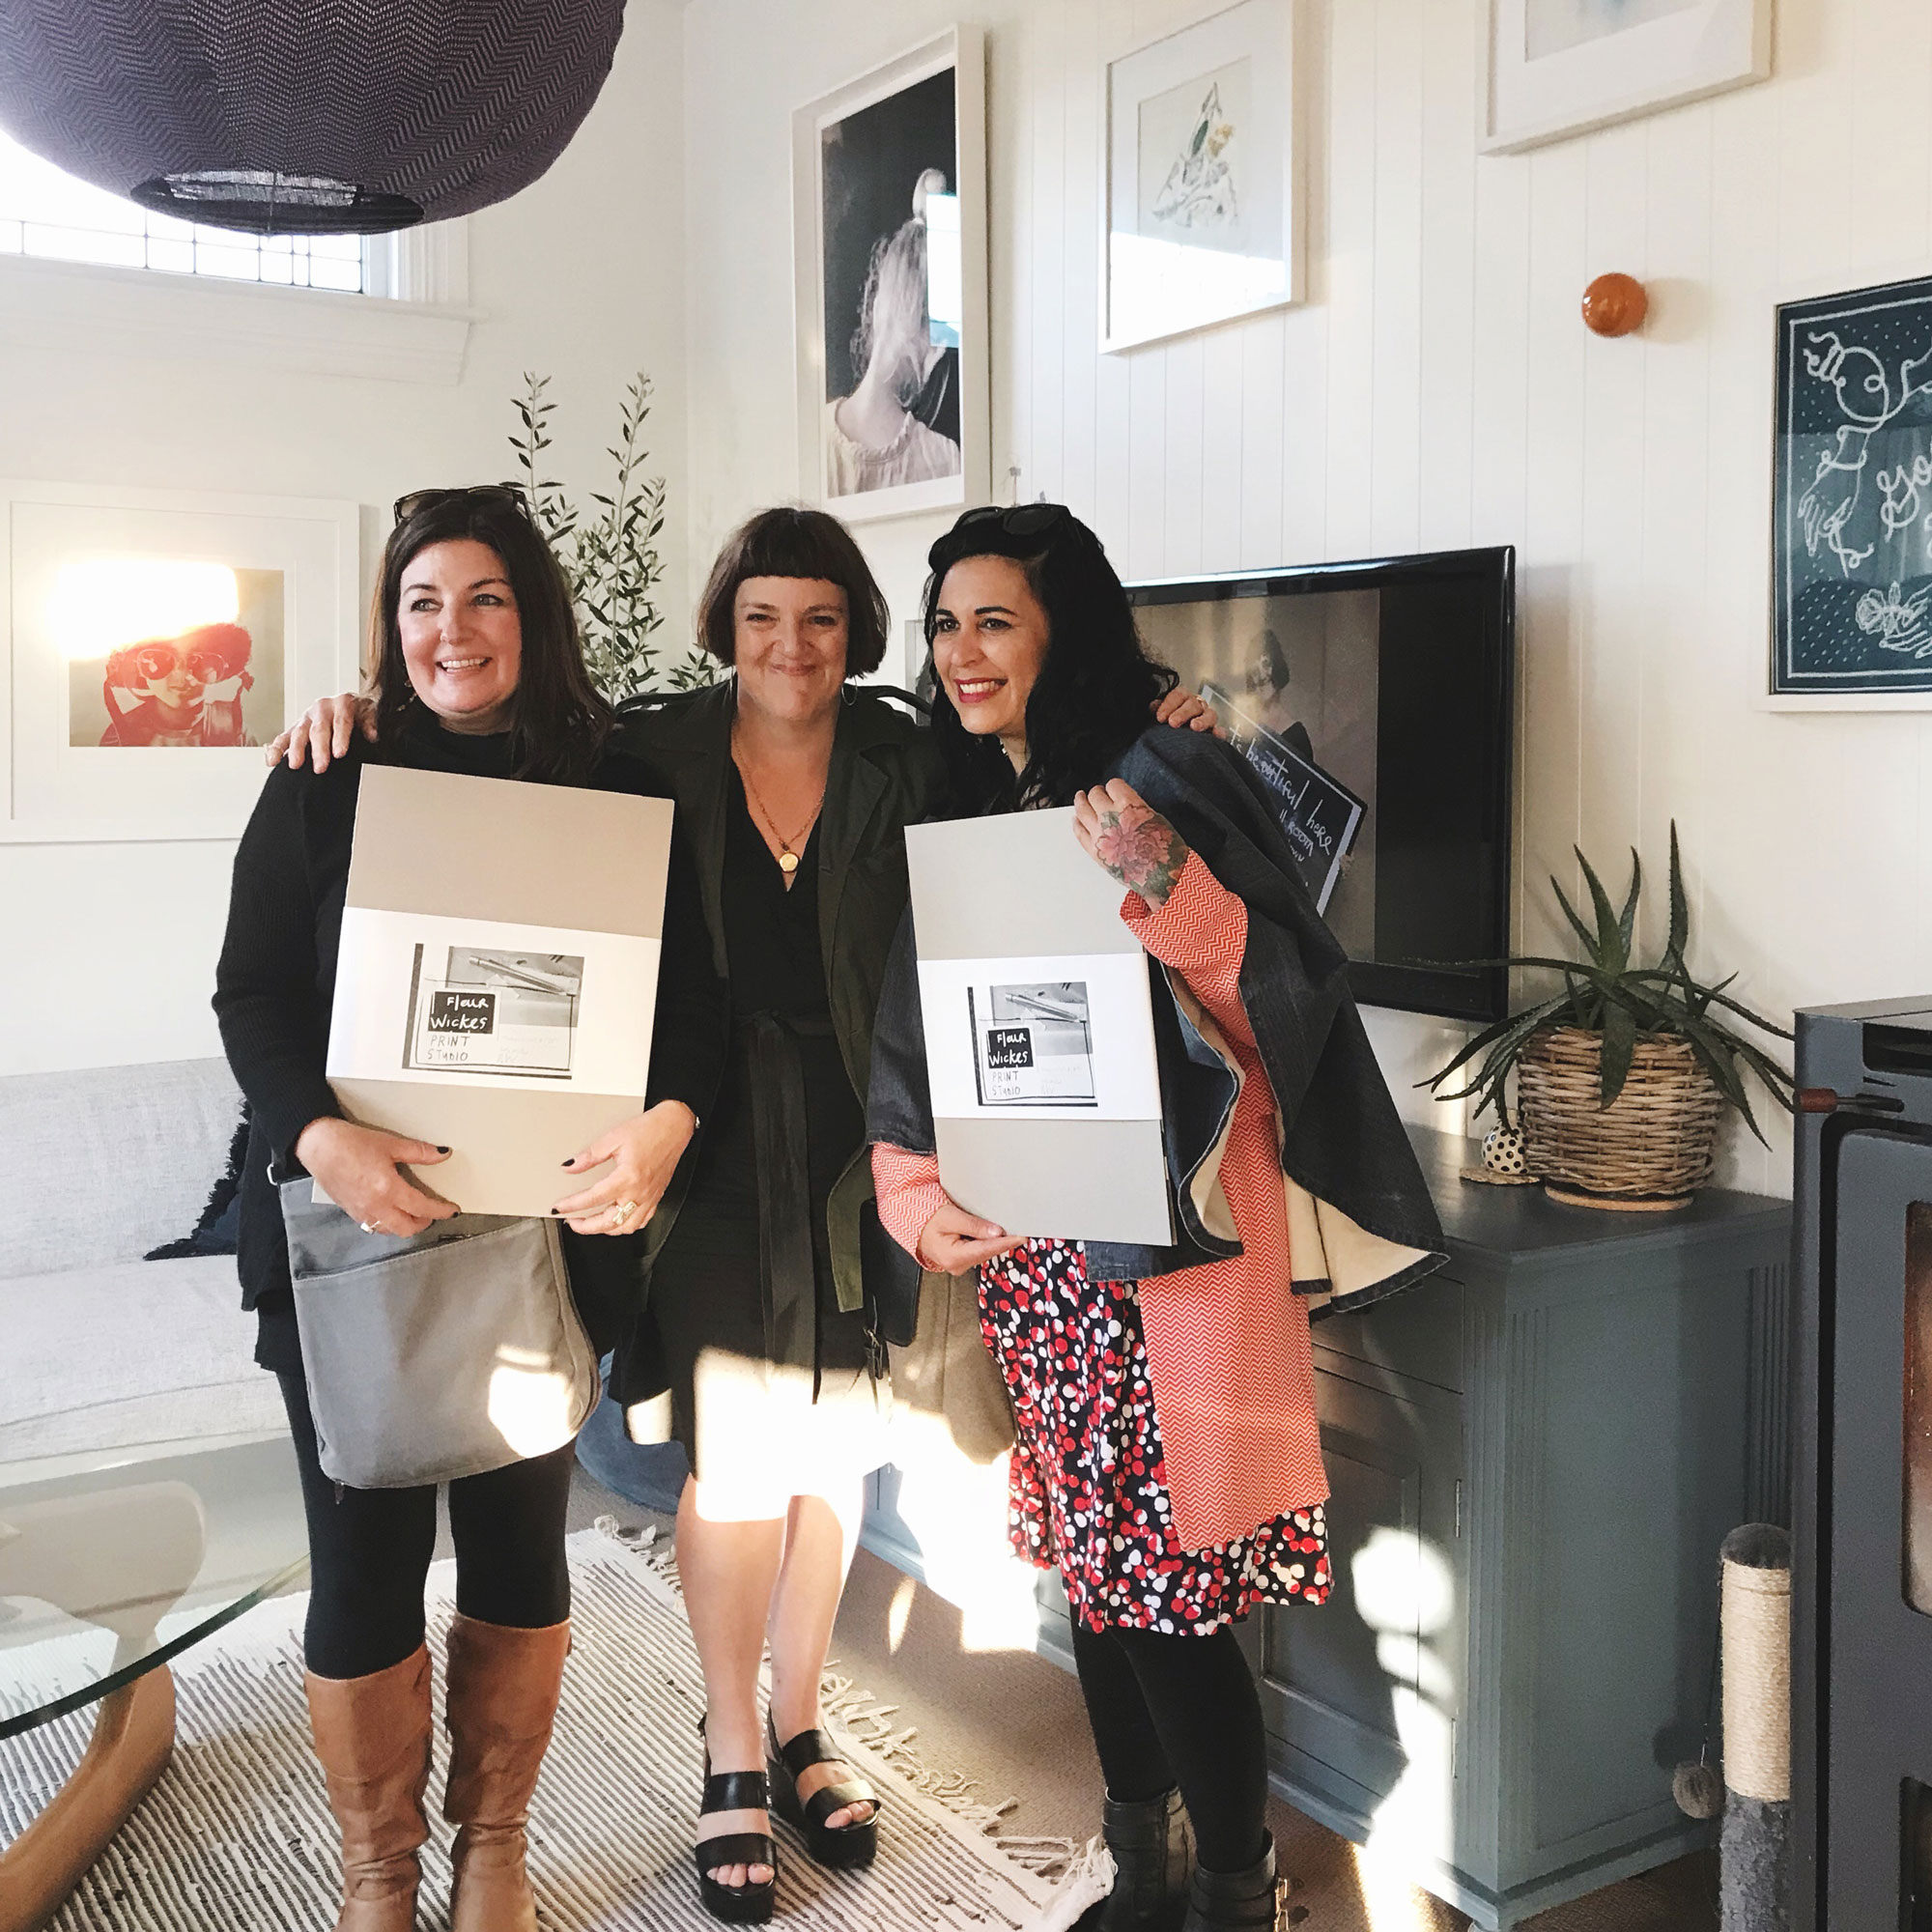 Two lovely women with me and their studioprints, Art House with Studio Home, Christchurch 2018  // Photograph: Julia Atkinson-Dunn